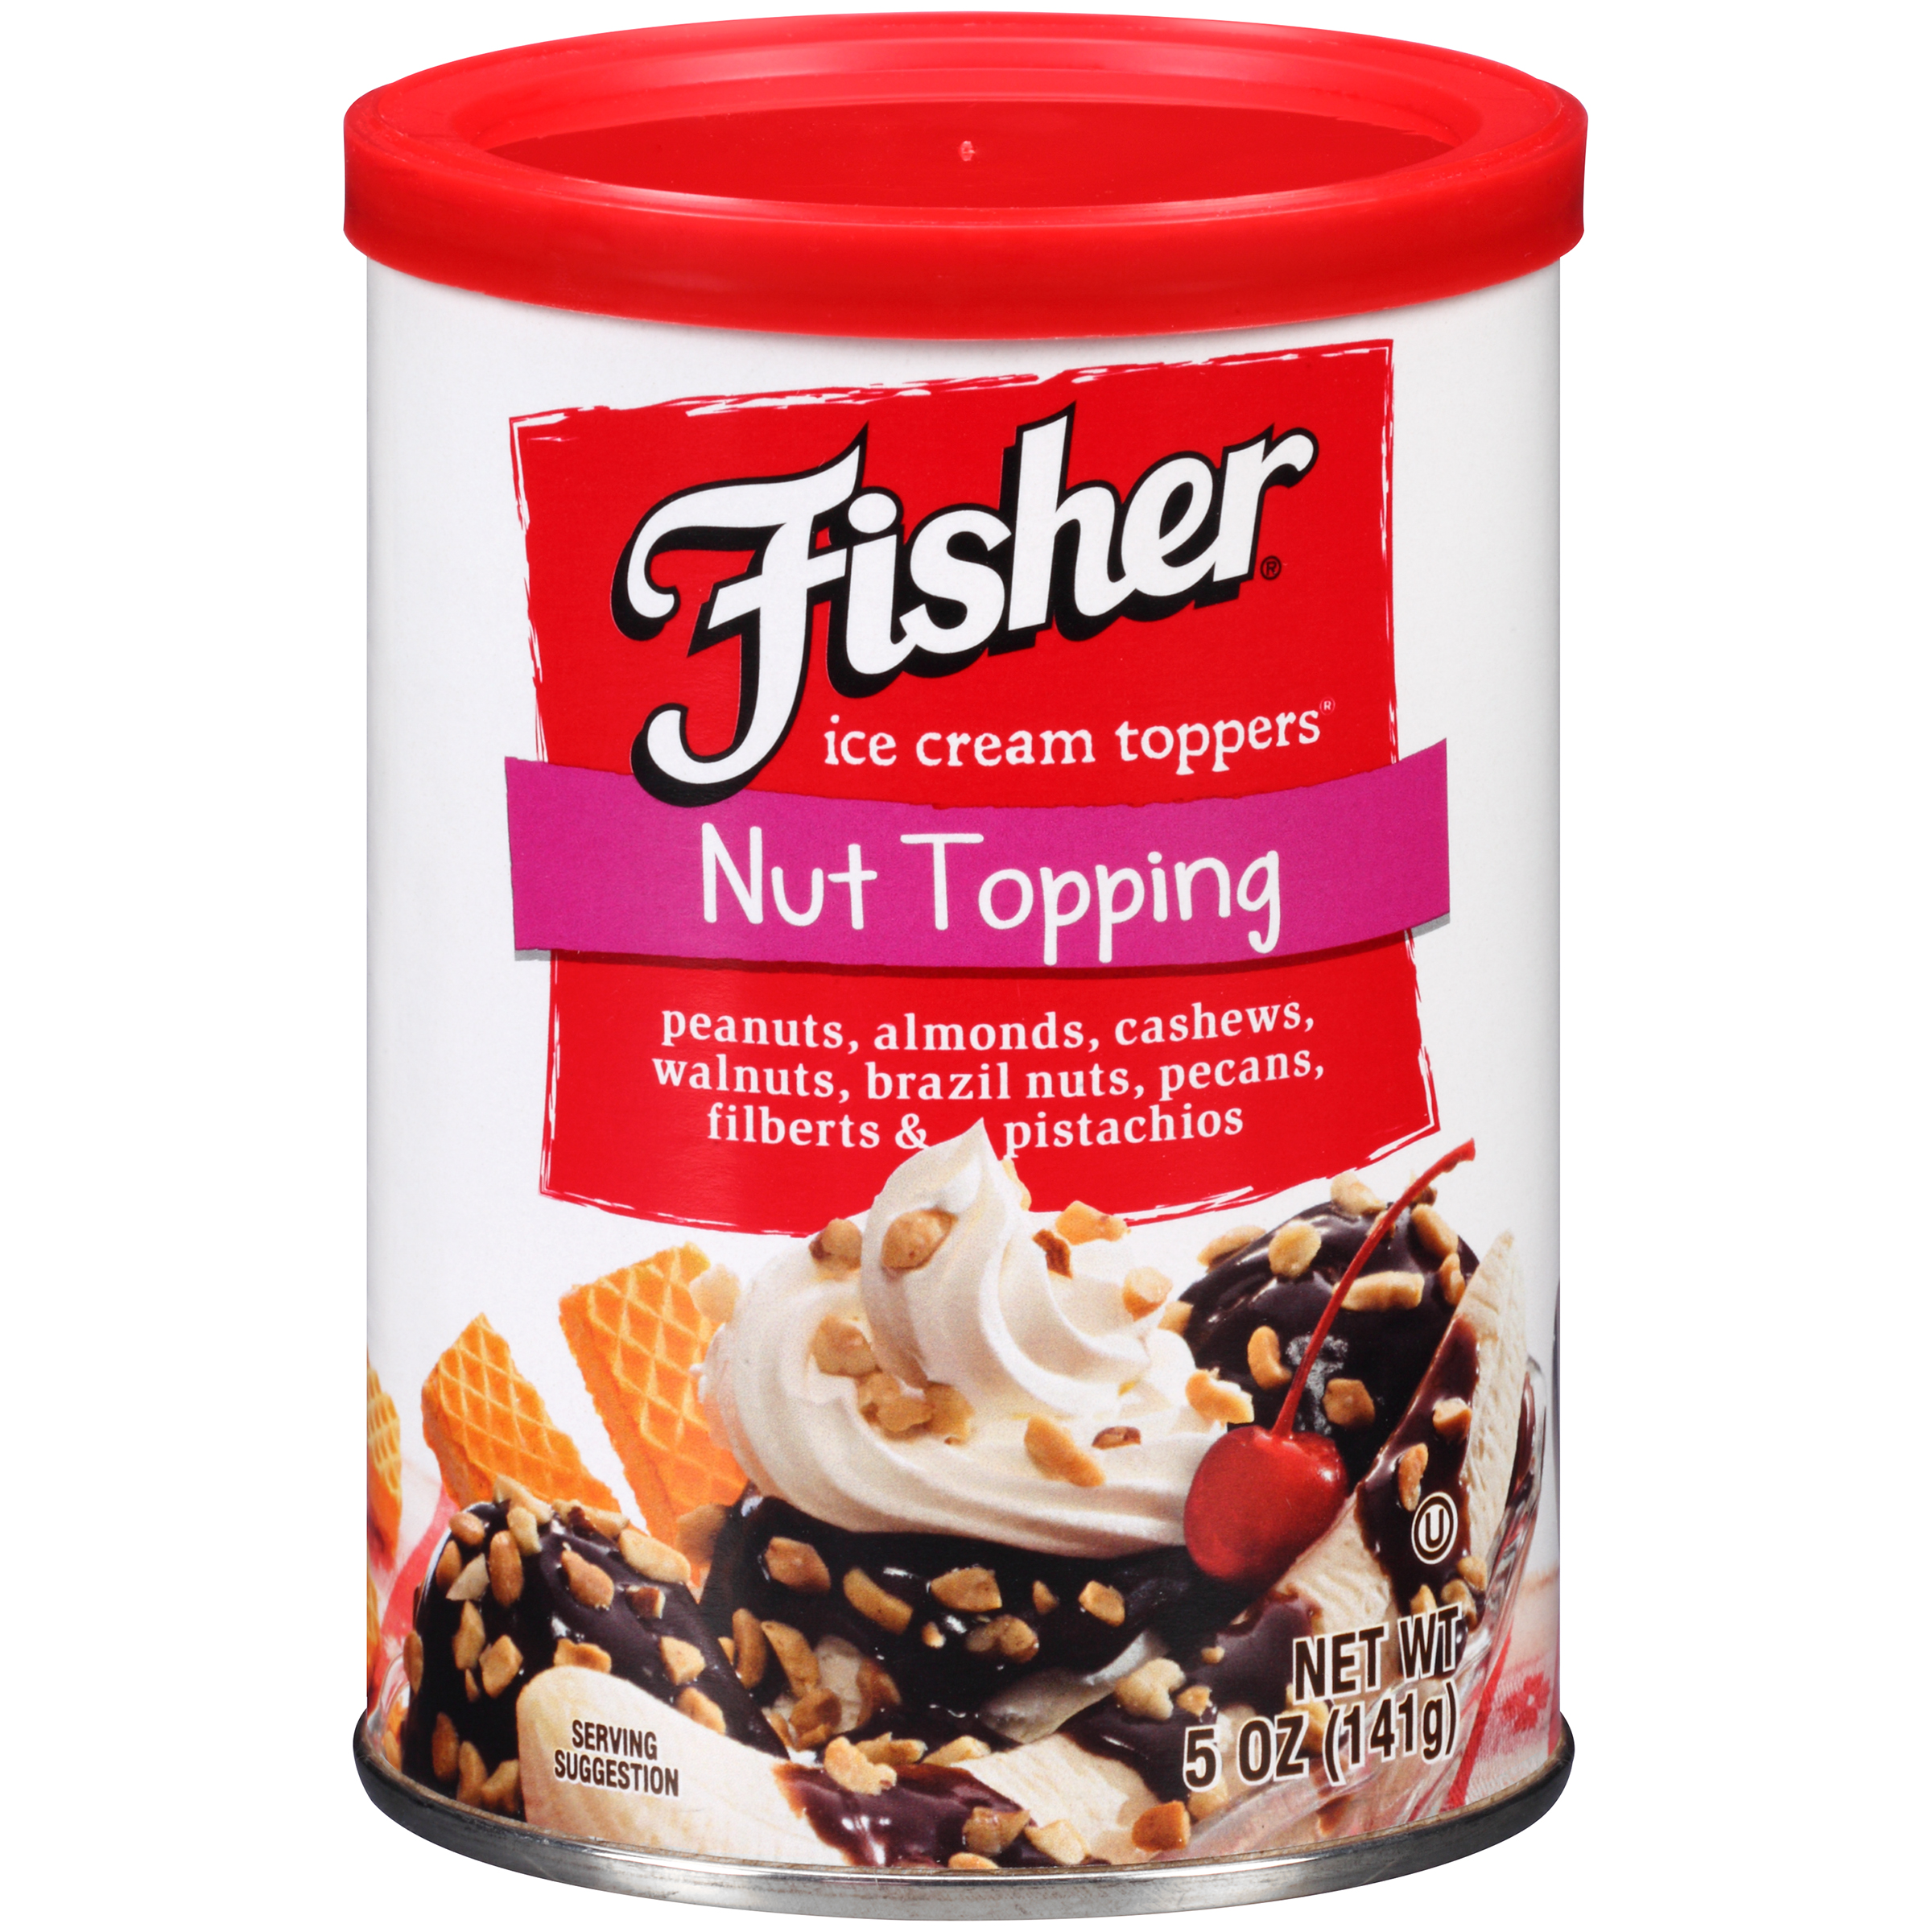 Fisher�� Nut Topping Ice Cream Toppers�� 5 oz. Can